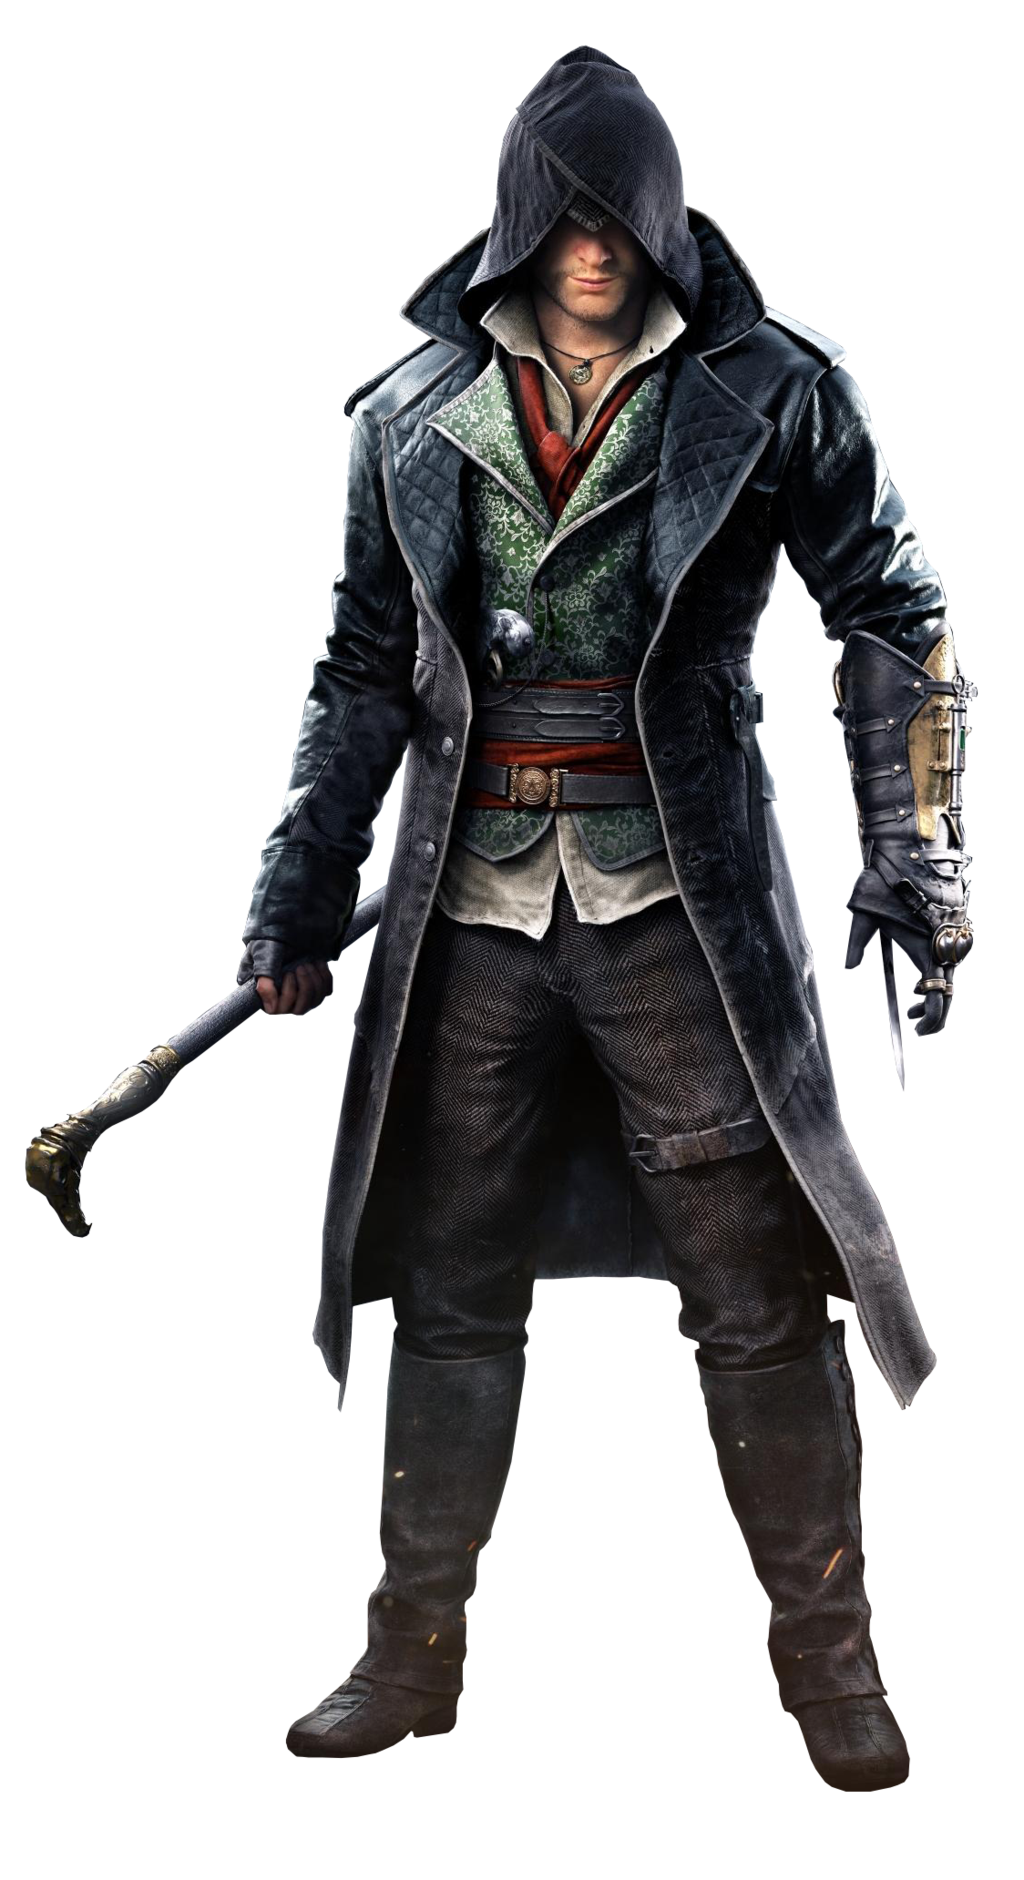 PNG Assassins Creed Actor With A Black Hat In His Hand. 27528